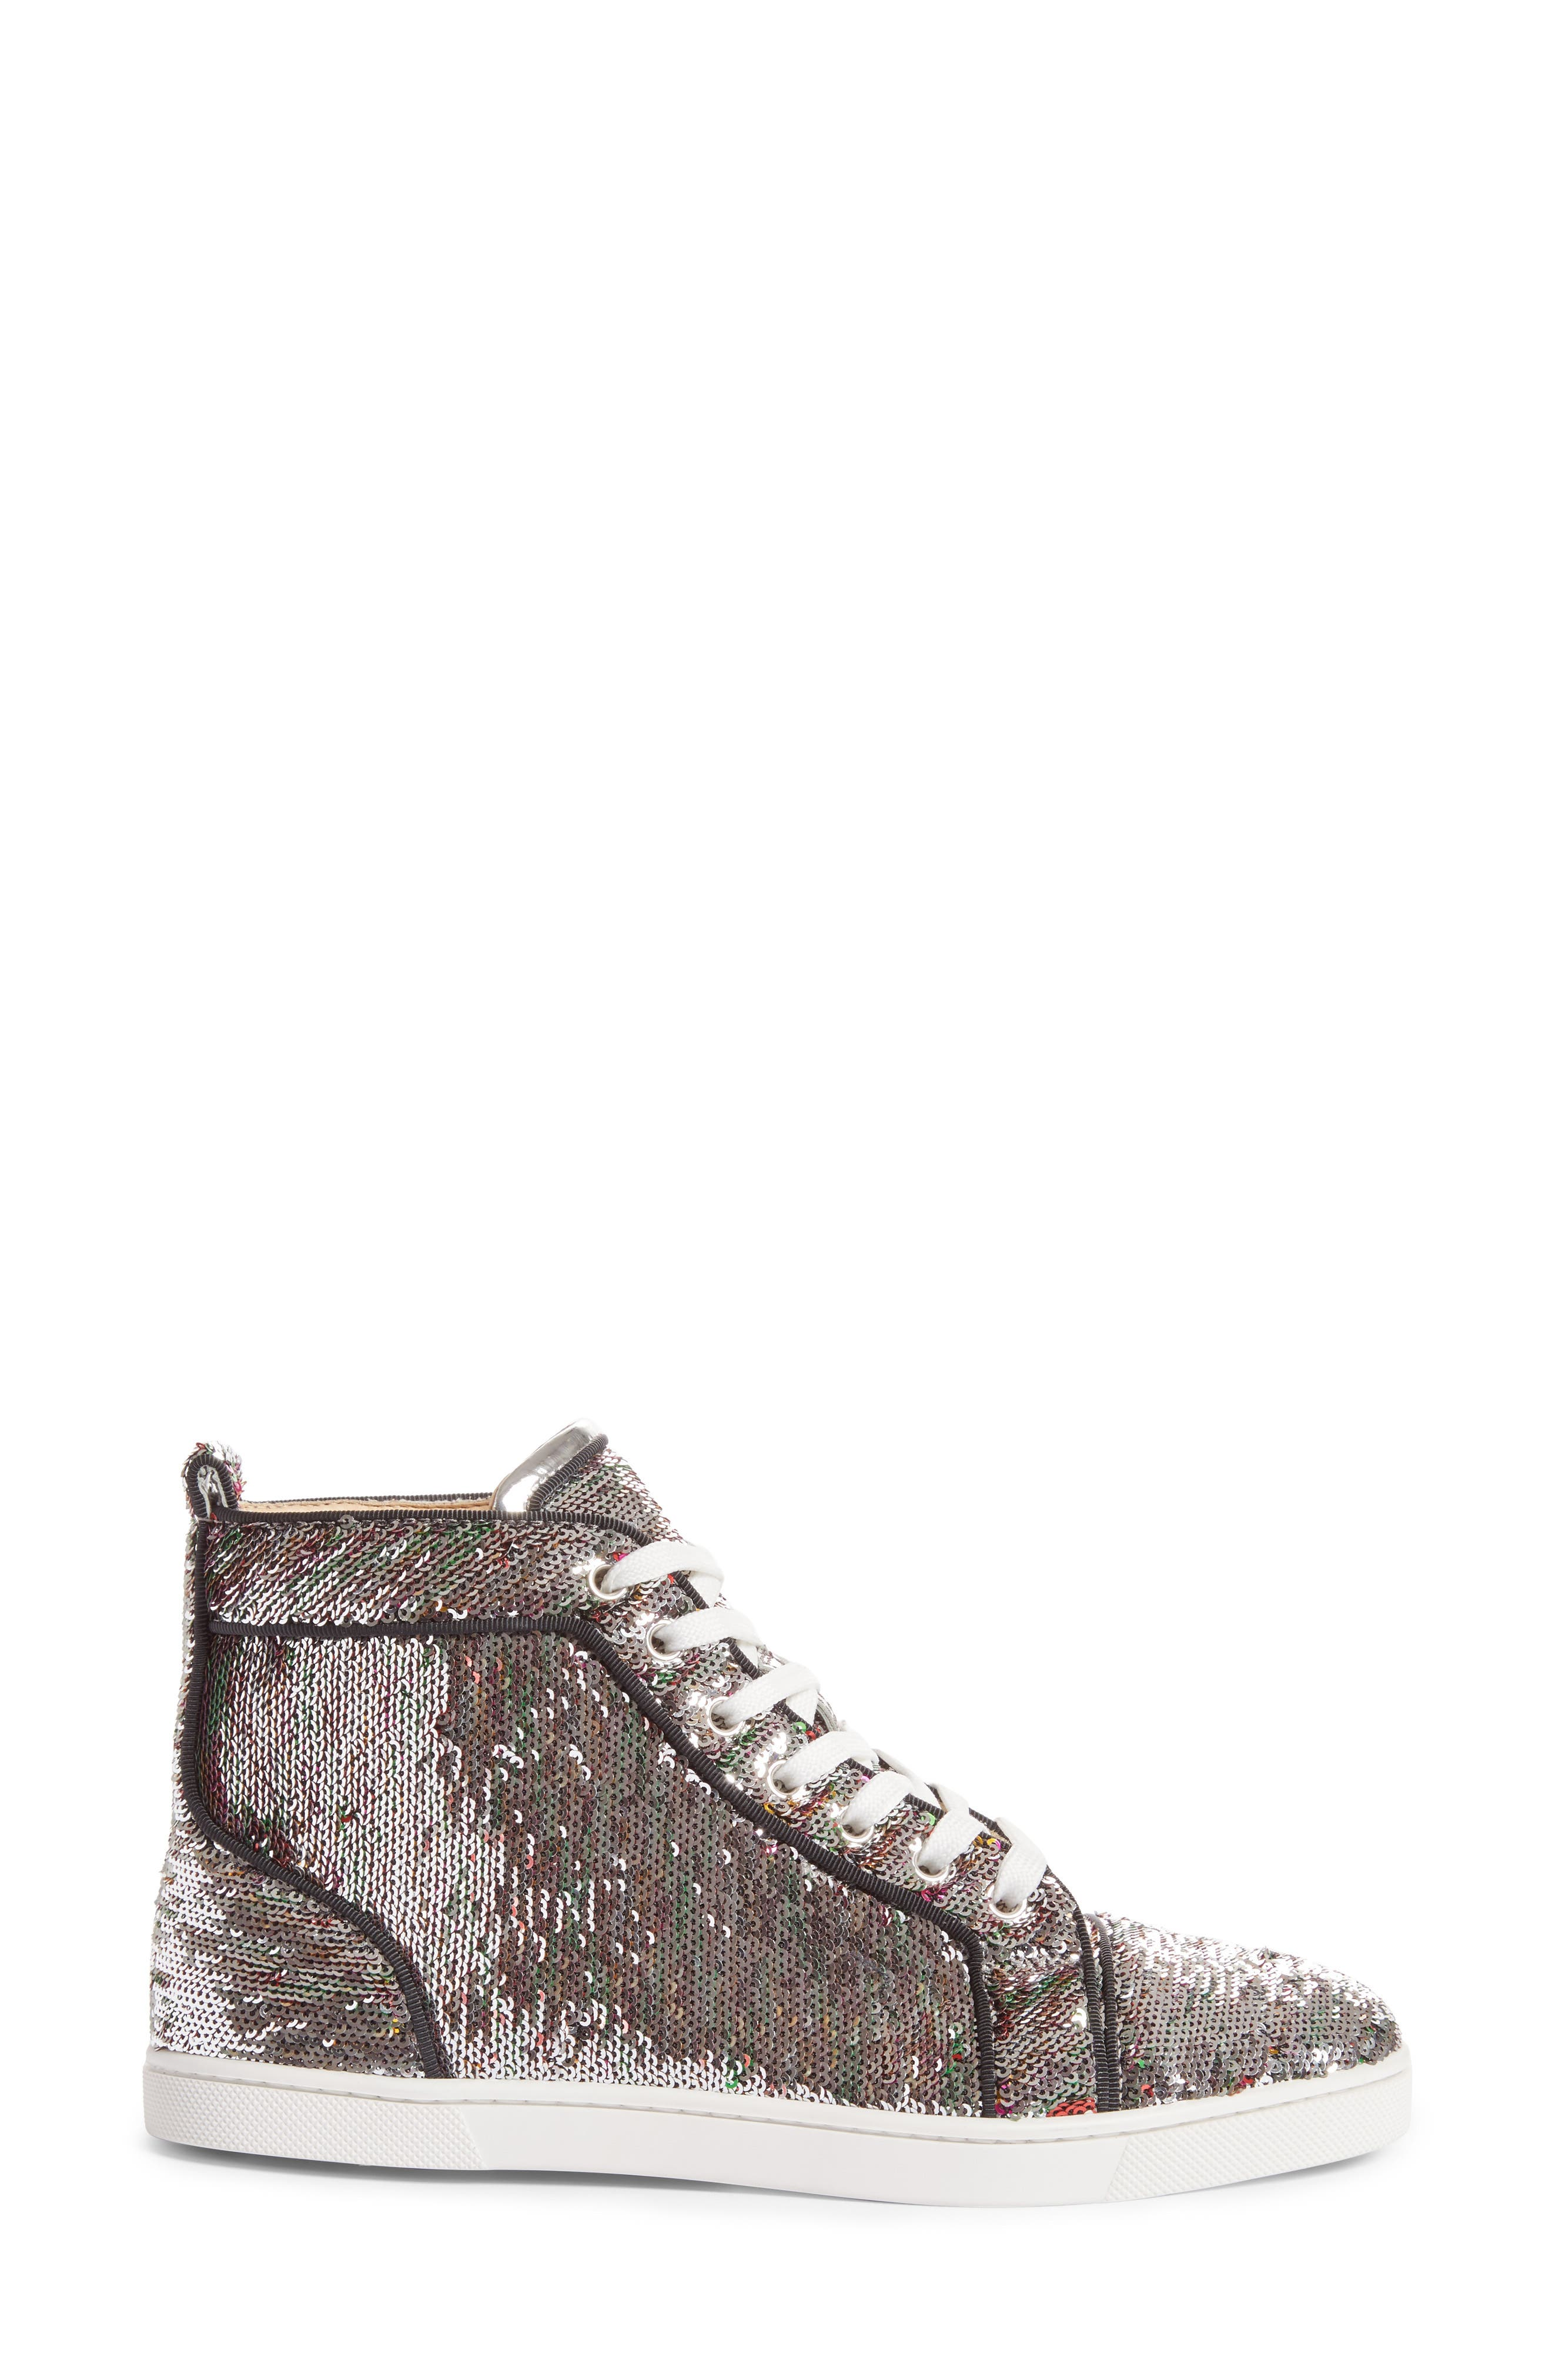 Bip Bip High Top Sneaker,                             Alternate thumbnail 9, color,